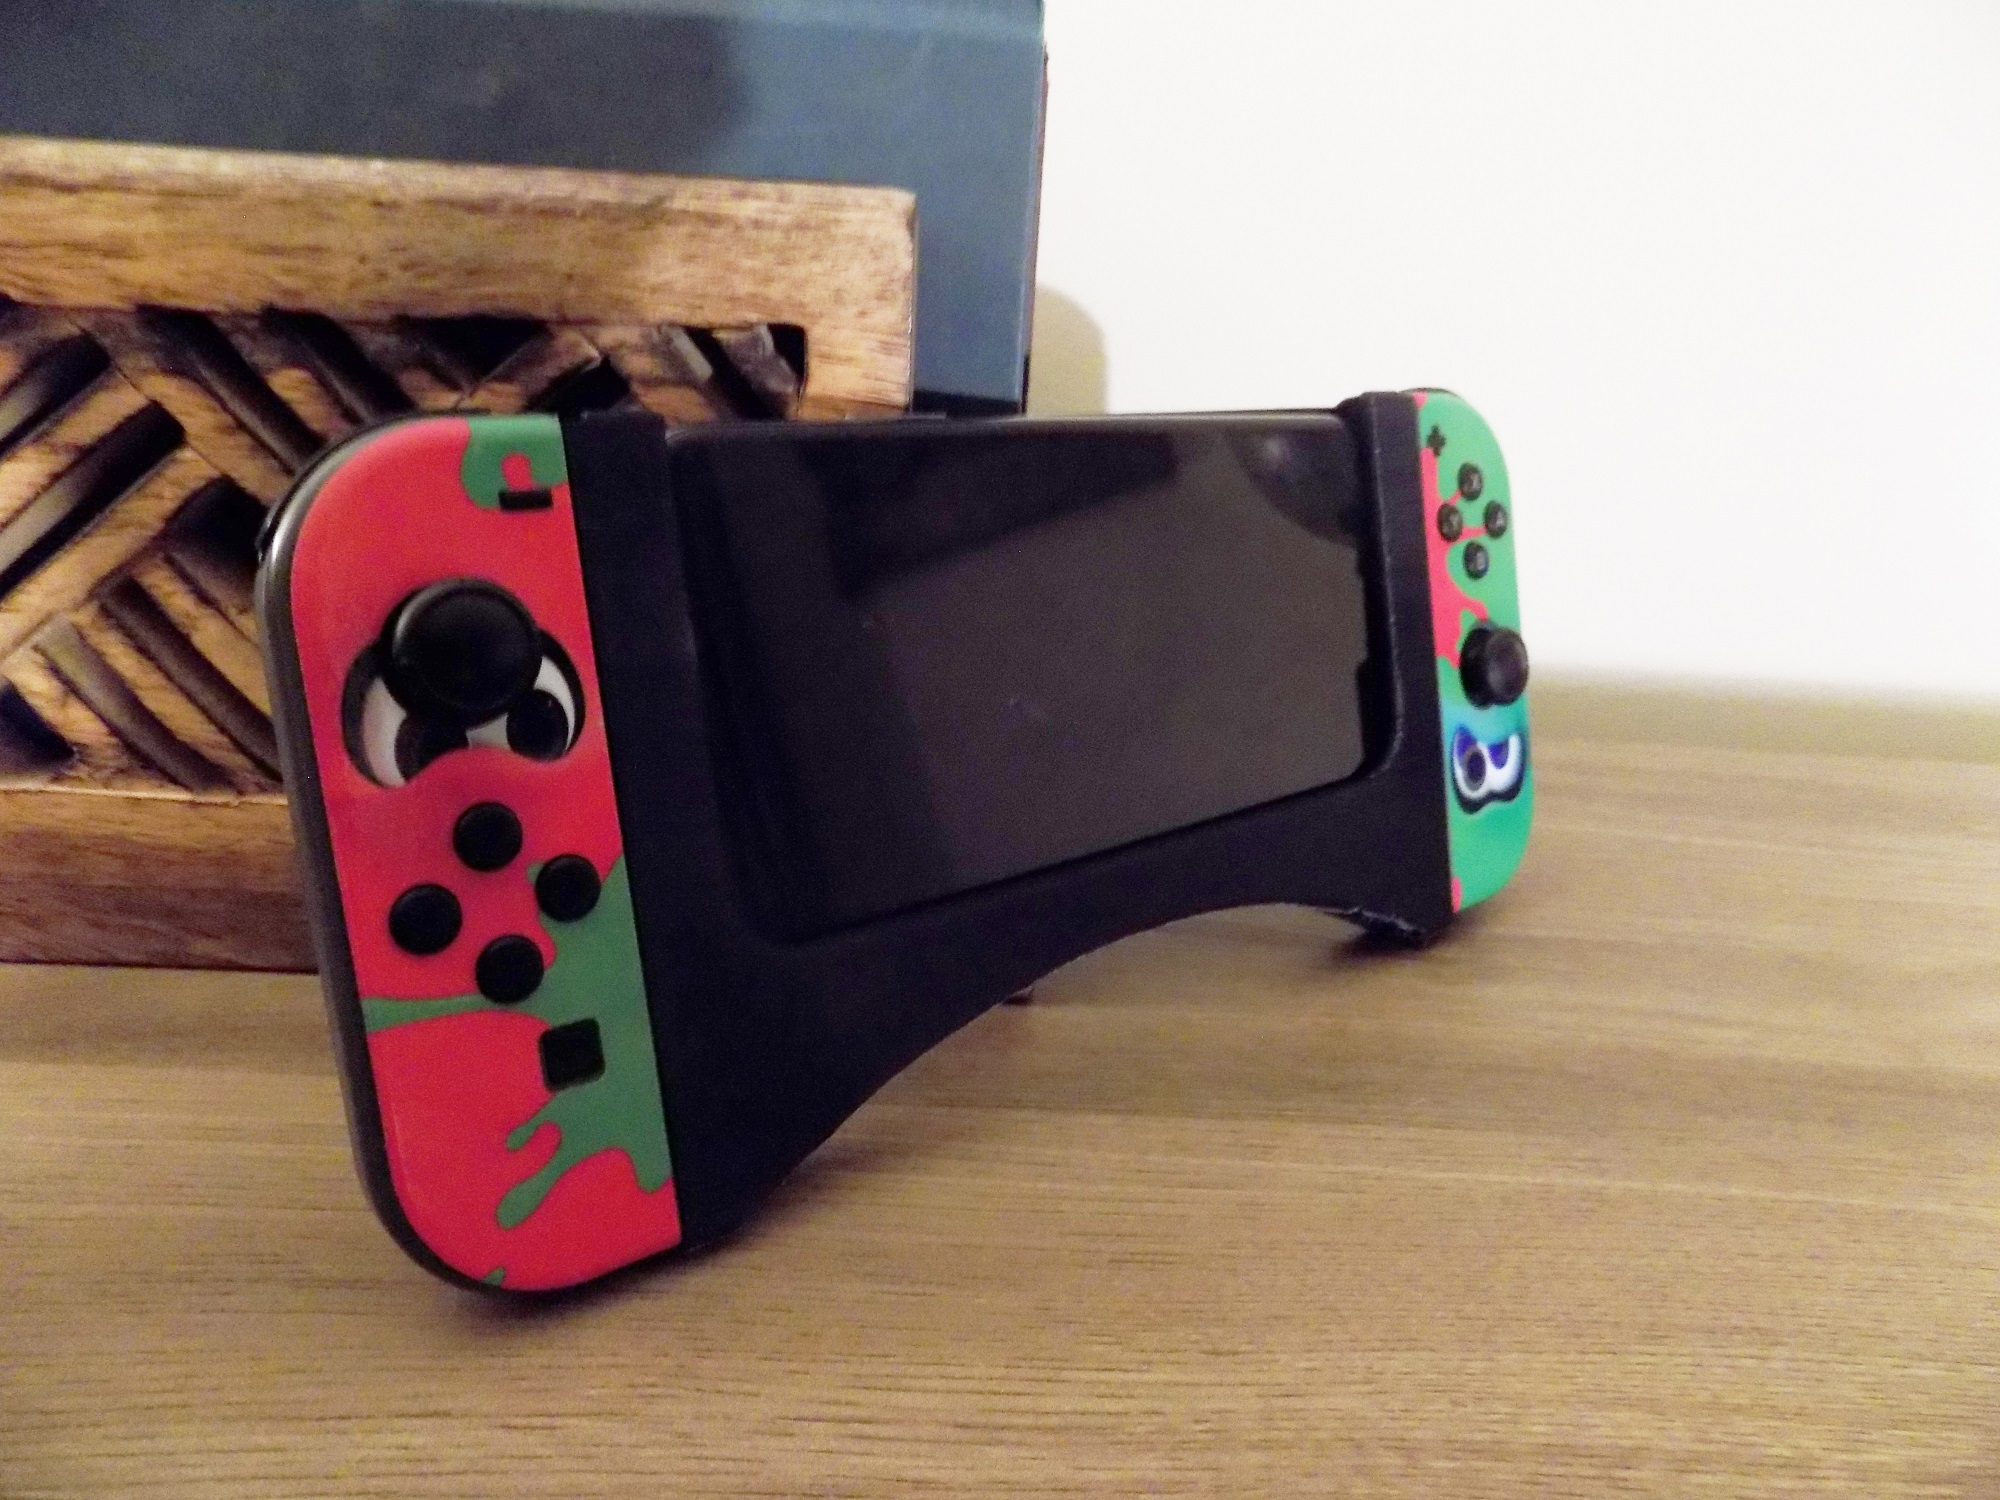 Attach the Nintendo Switch Joy-Cons to your phone with a 3D